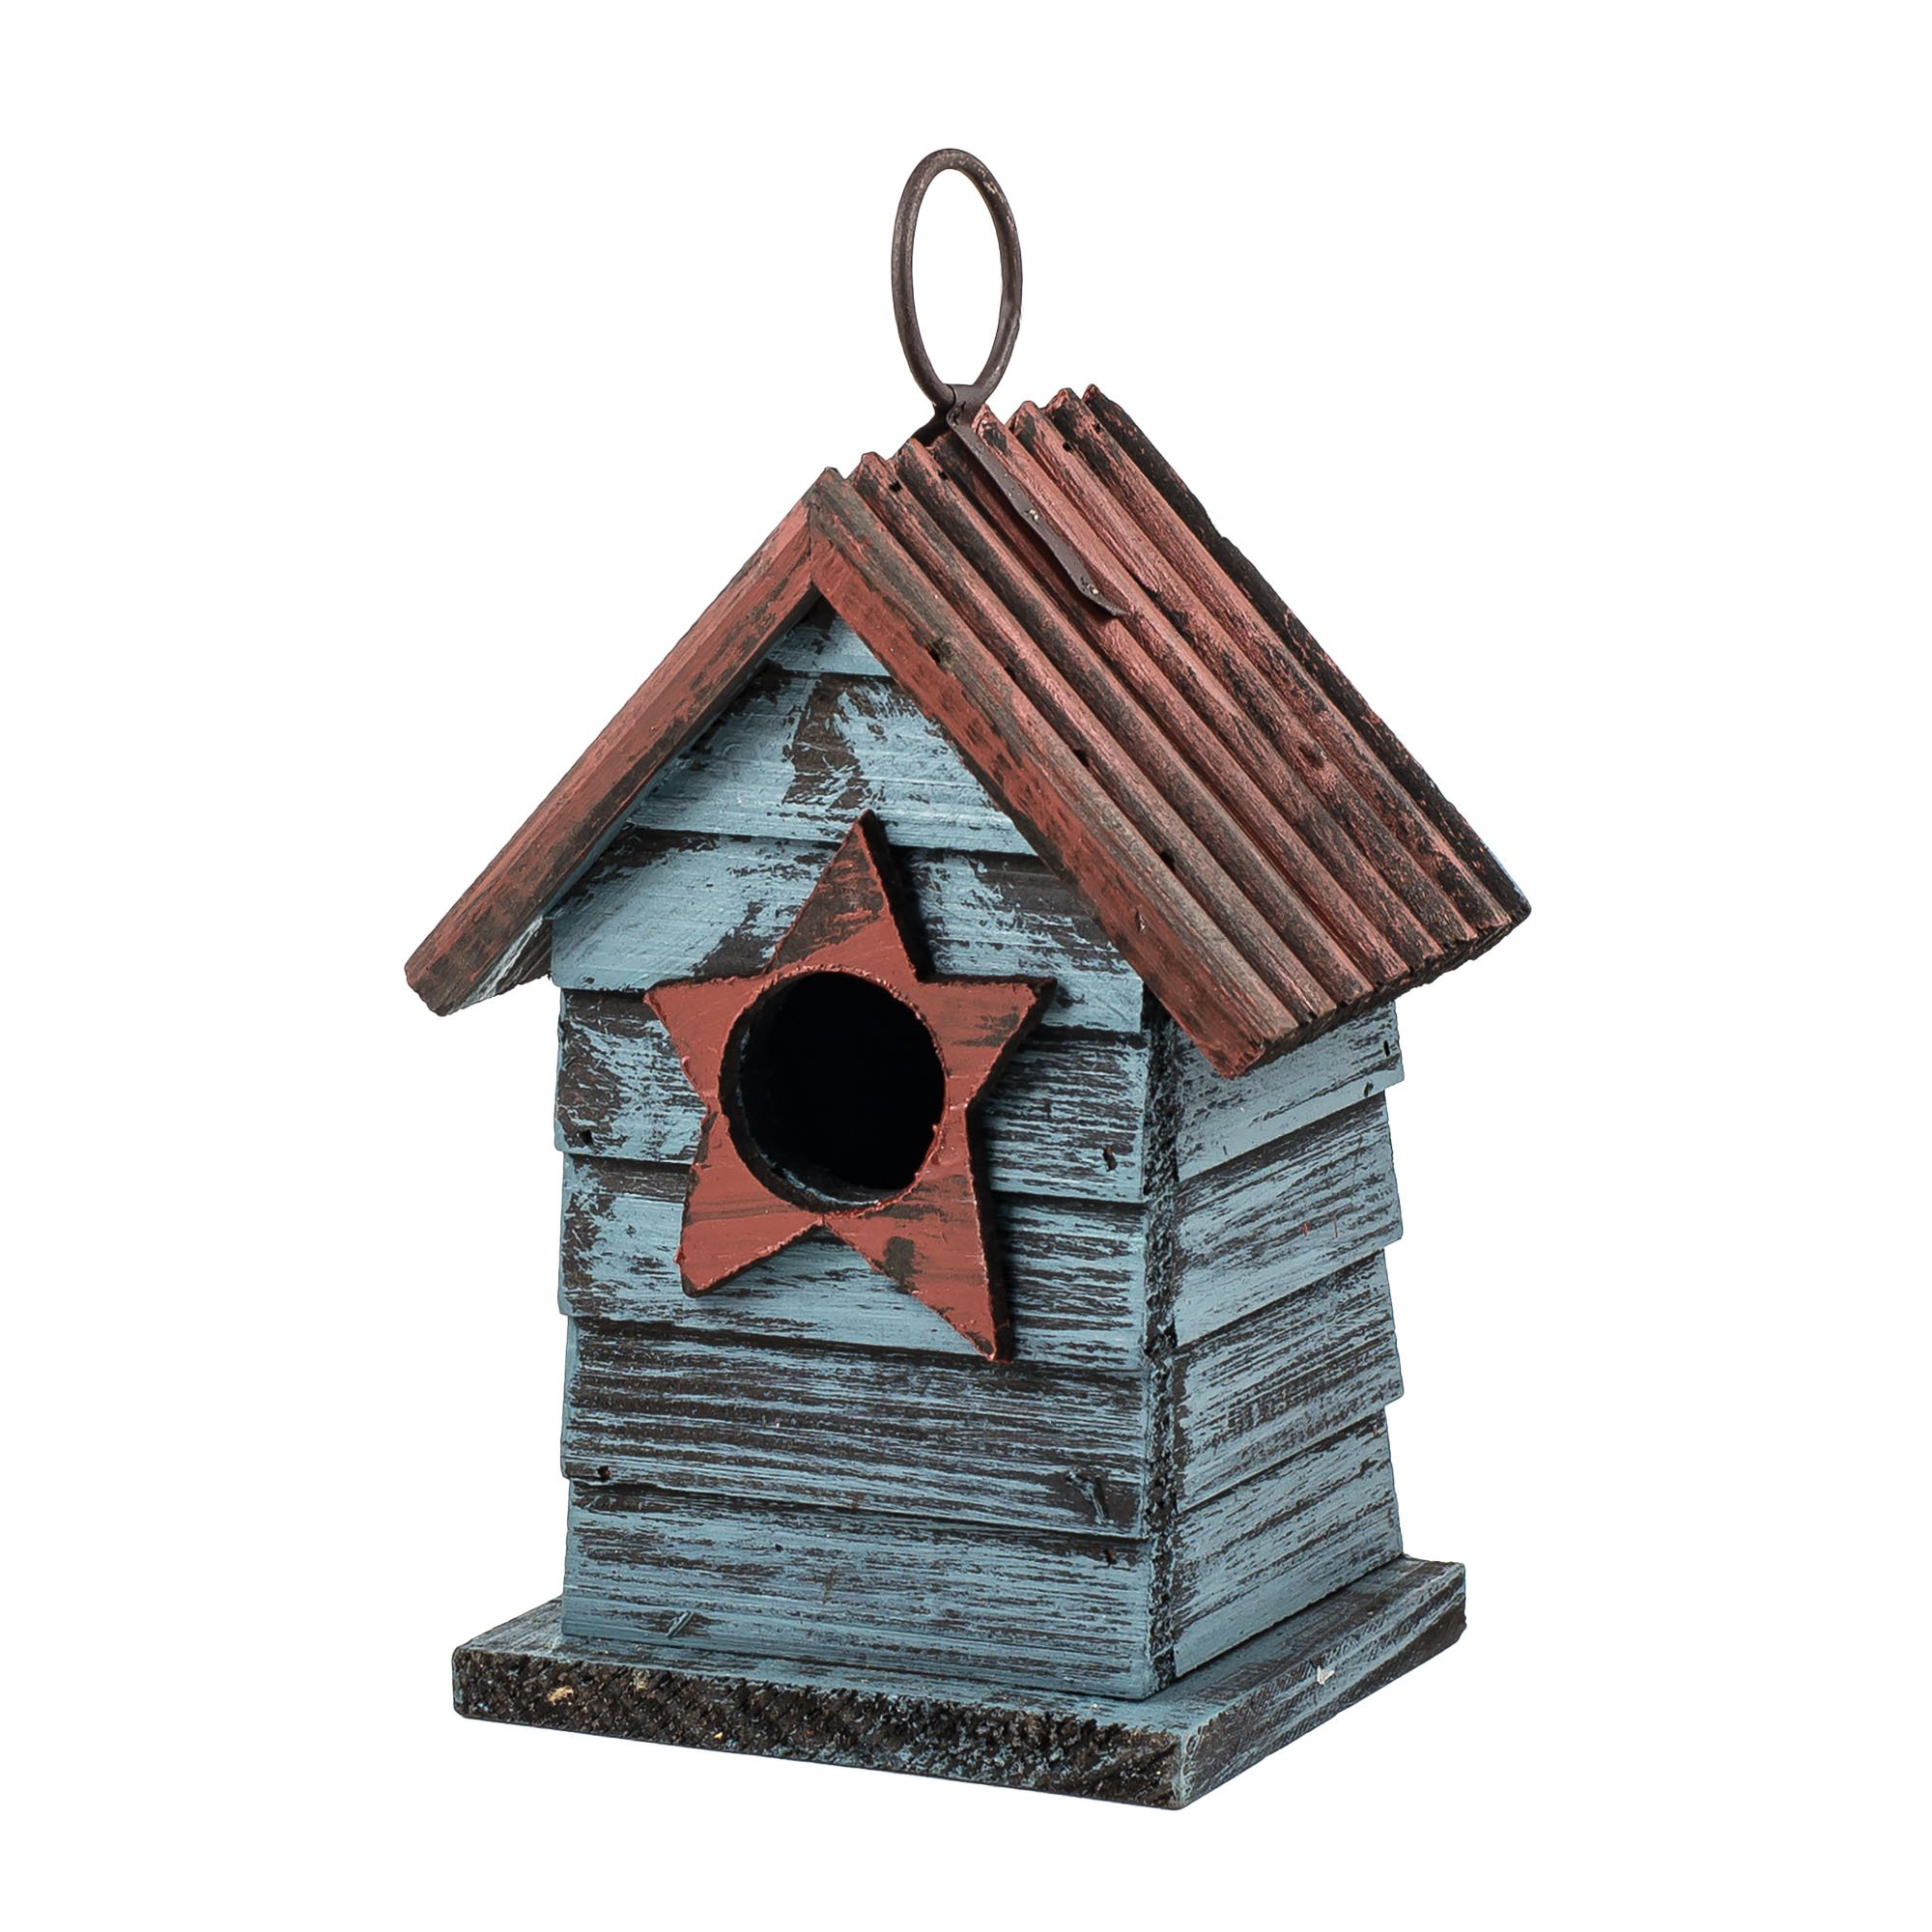 6.5'' Blue Hanging Rustic Style Birdhouse by Carson